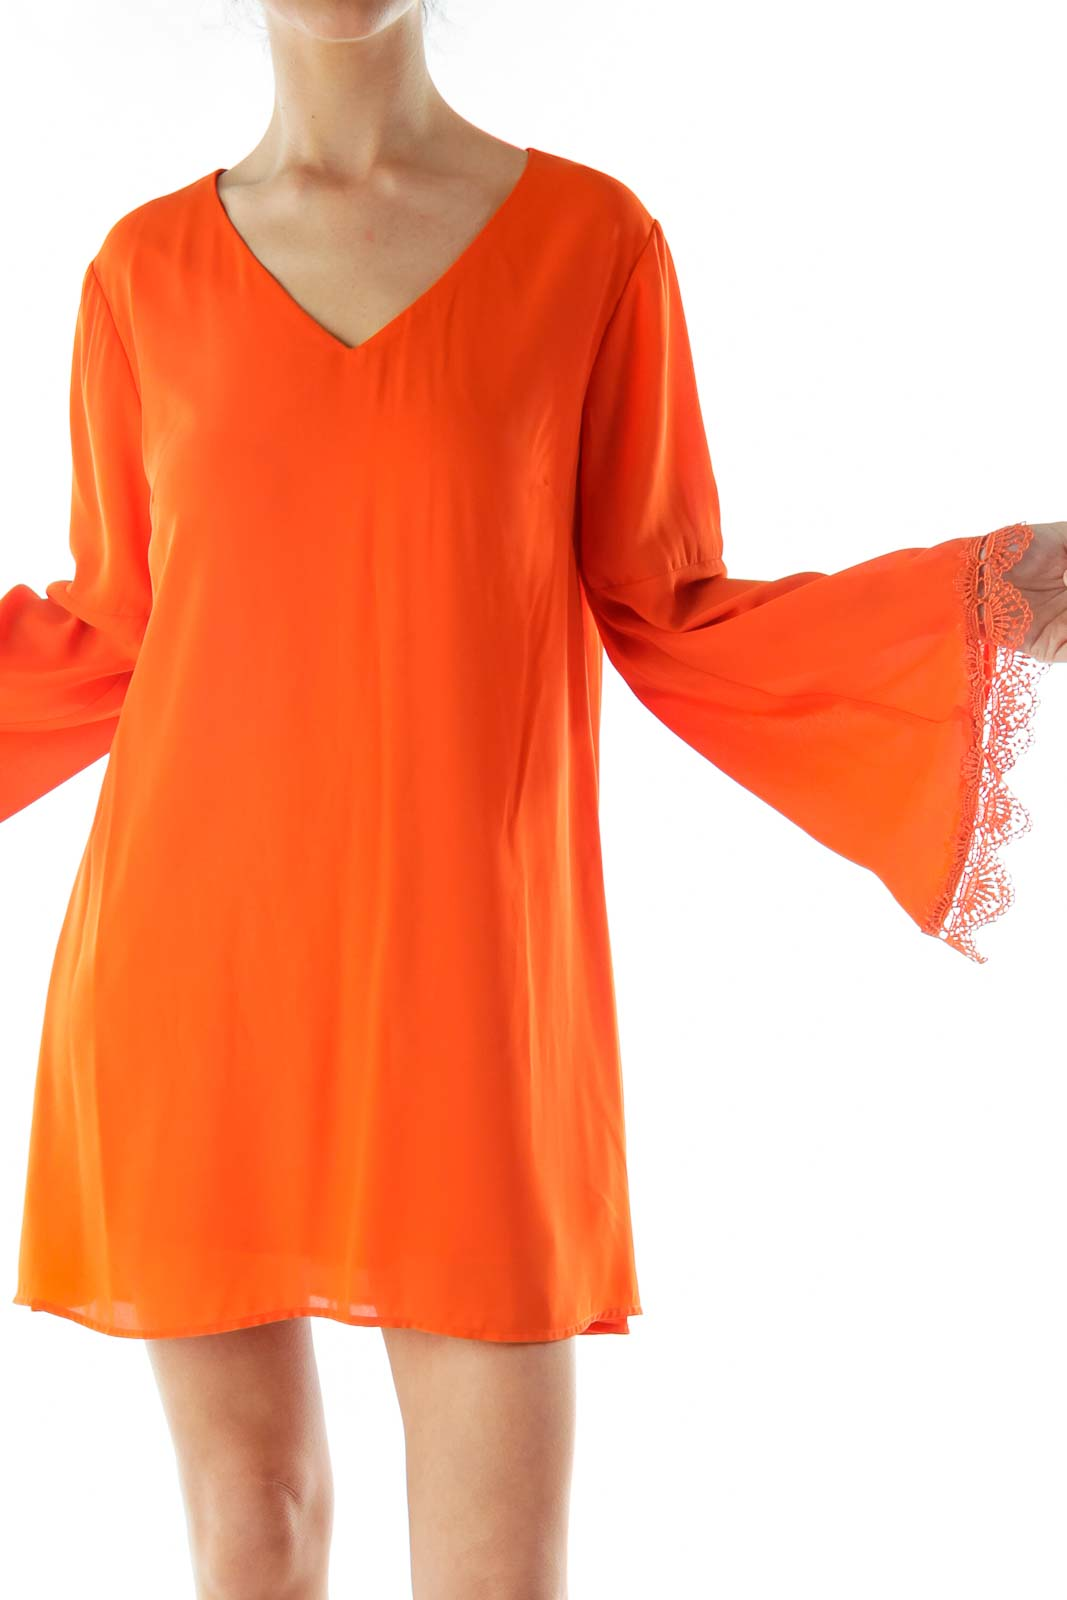 Orange Loose Blouse with Lace Edging Front